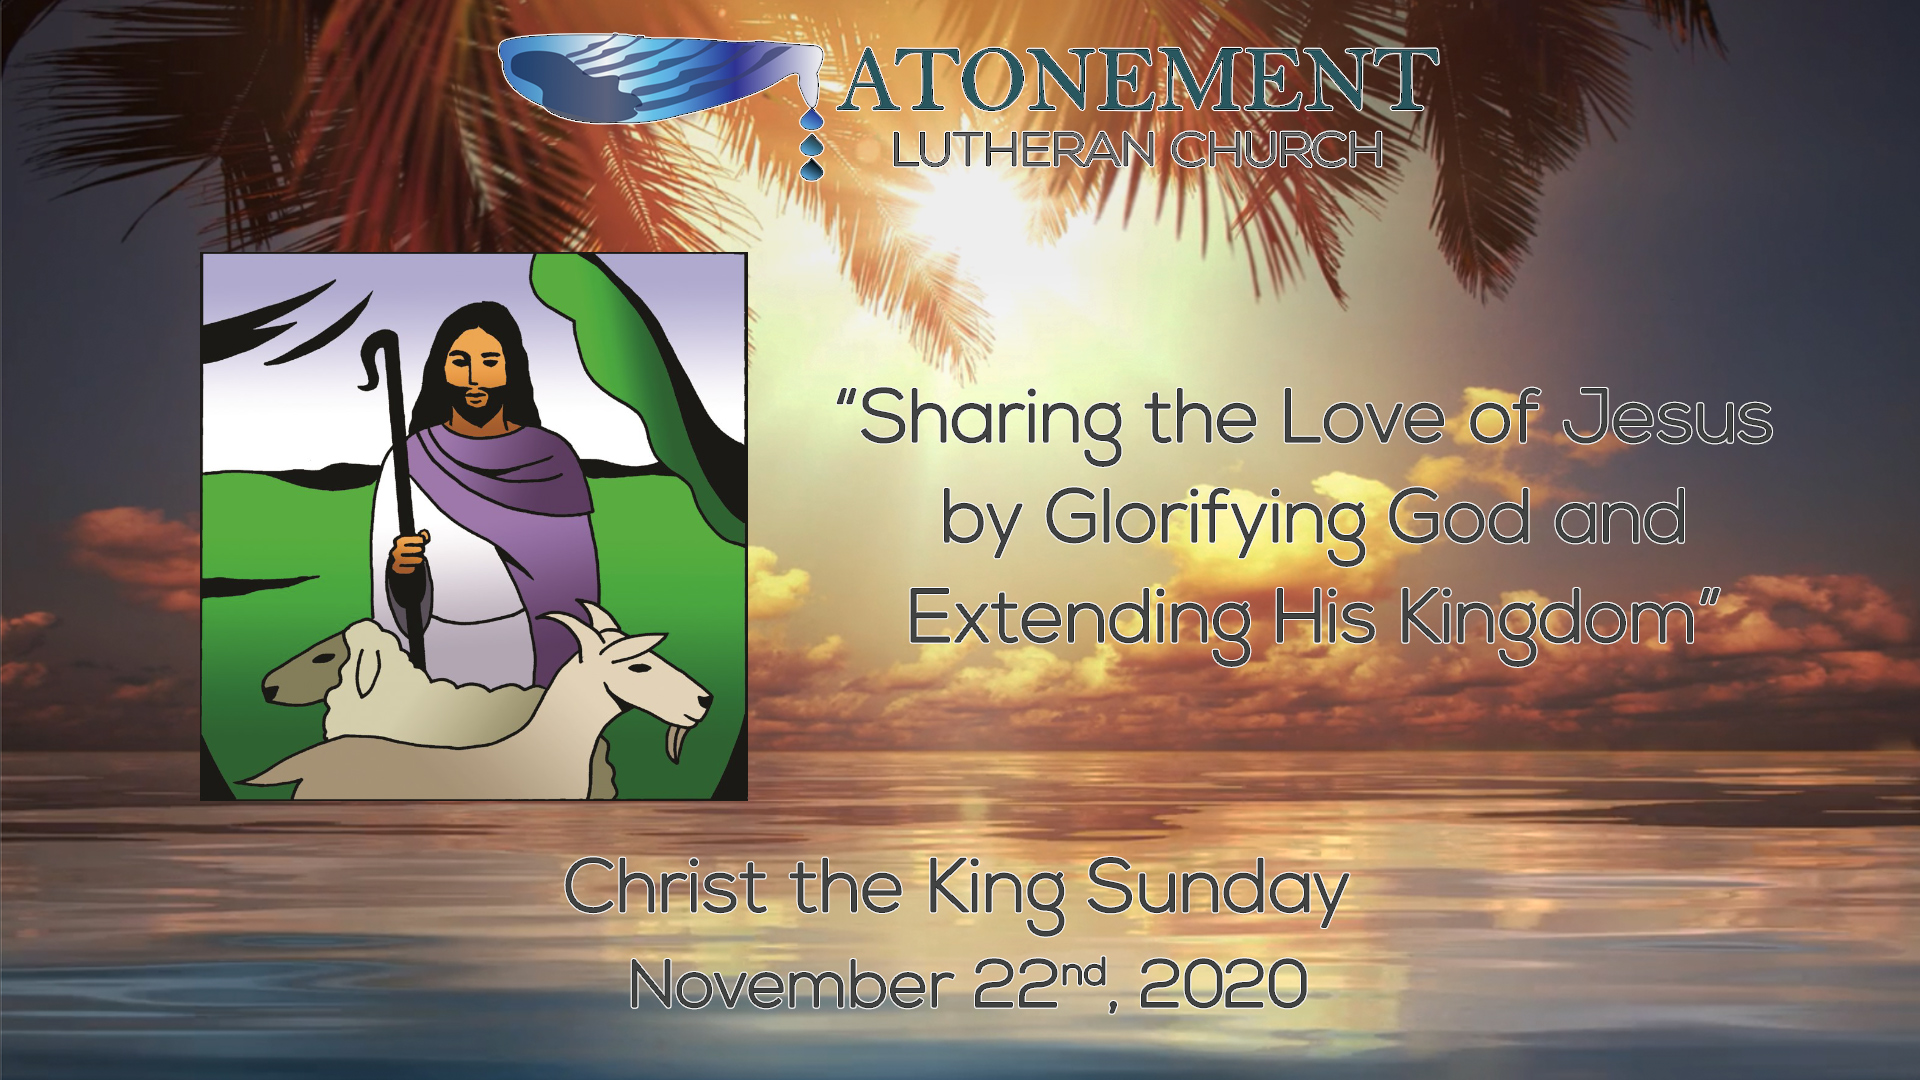 Nov 22 2020 24th Sunday after Pentecost